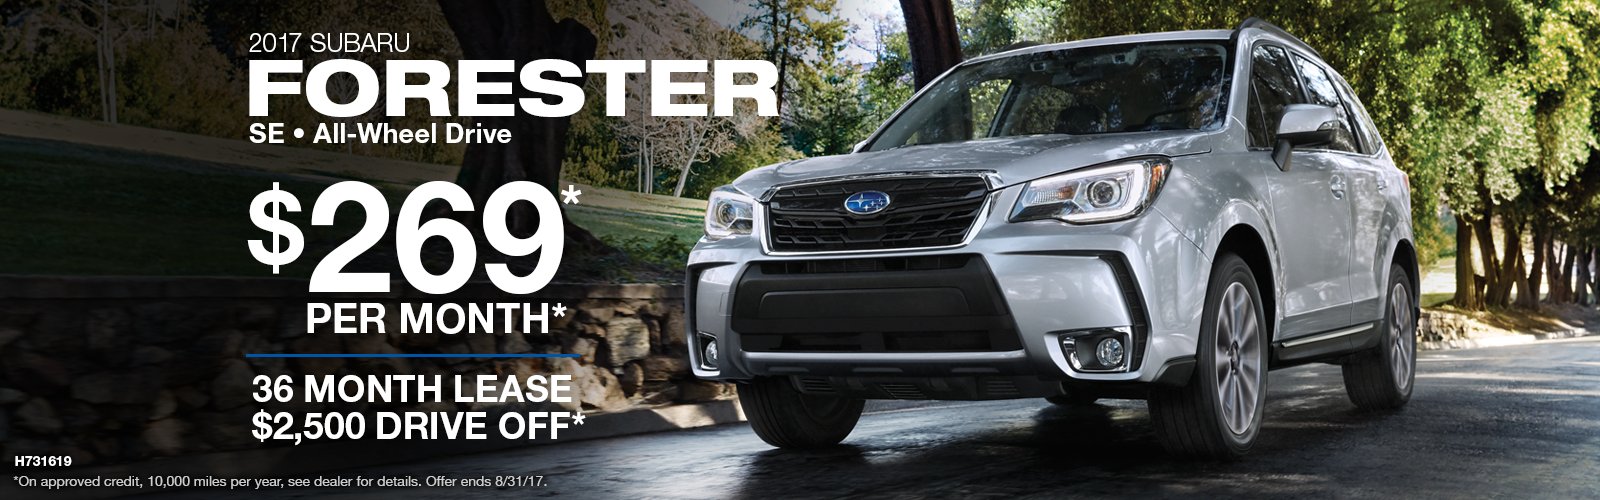 2017 Forester Lease